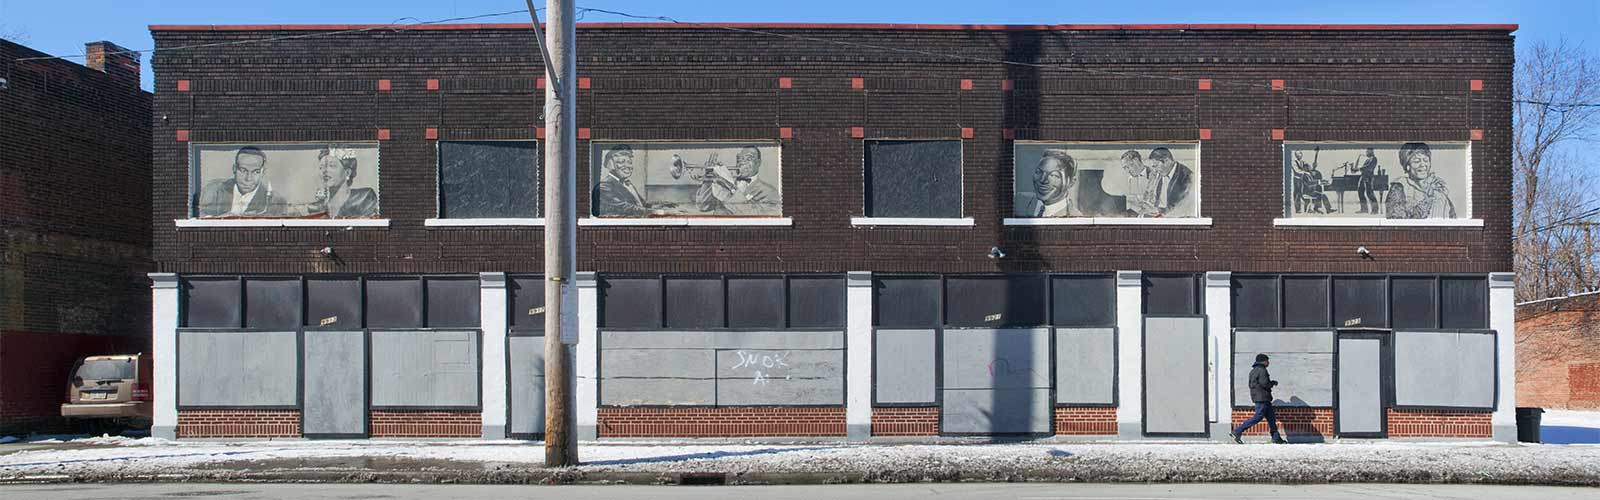 Jazz Greats murals on St. Clair, East Cleveland